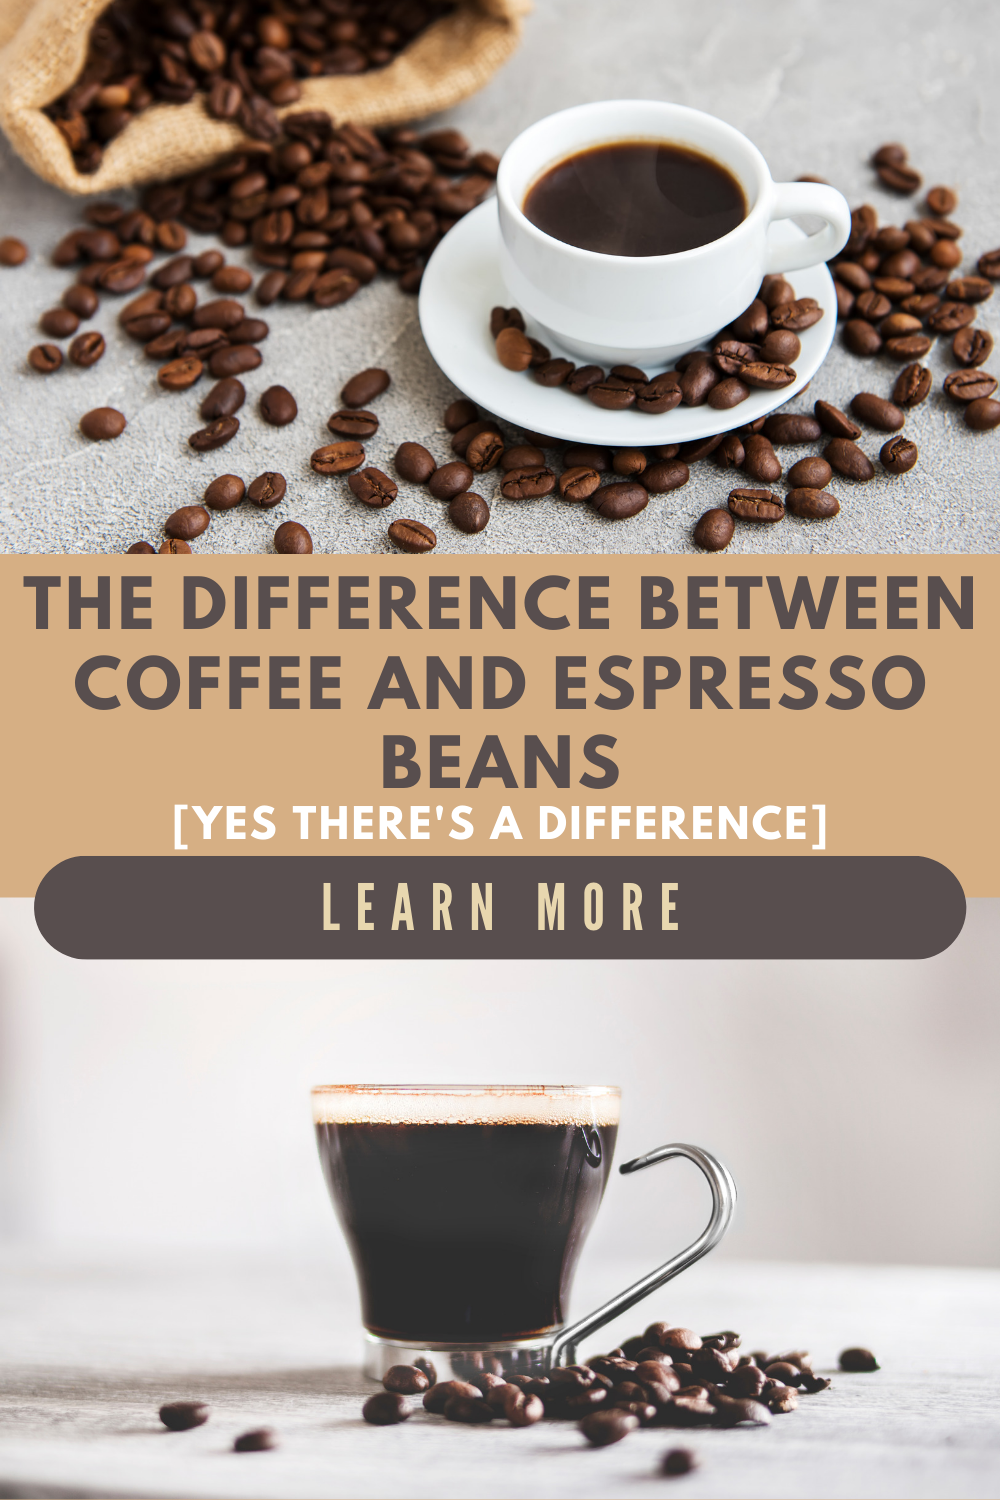 Espresso Beans Vs Coffee Beans What S The Difference Espresso Beans Coffee Beans Coffee Flavor